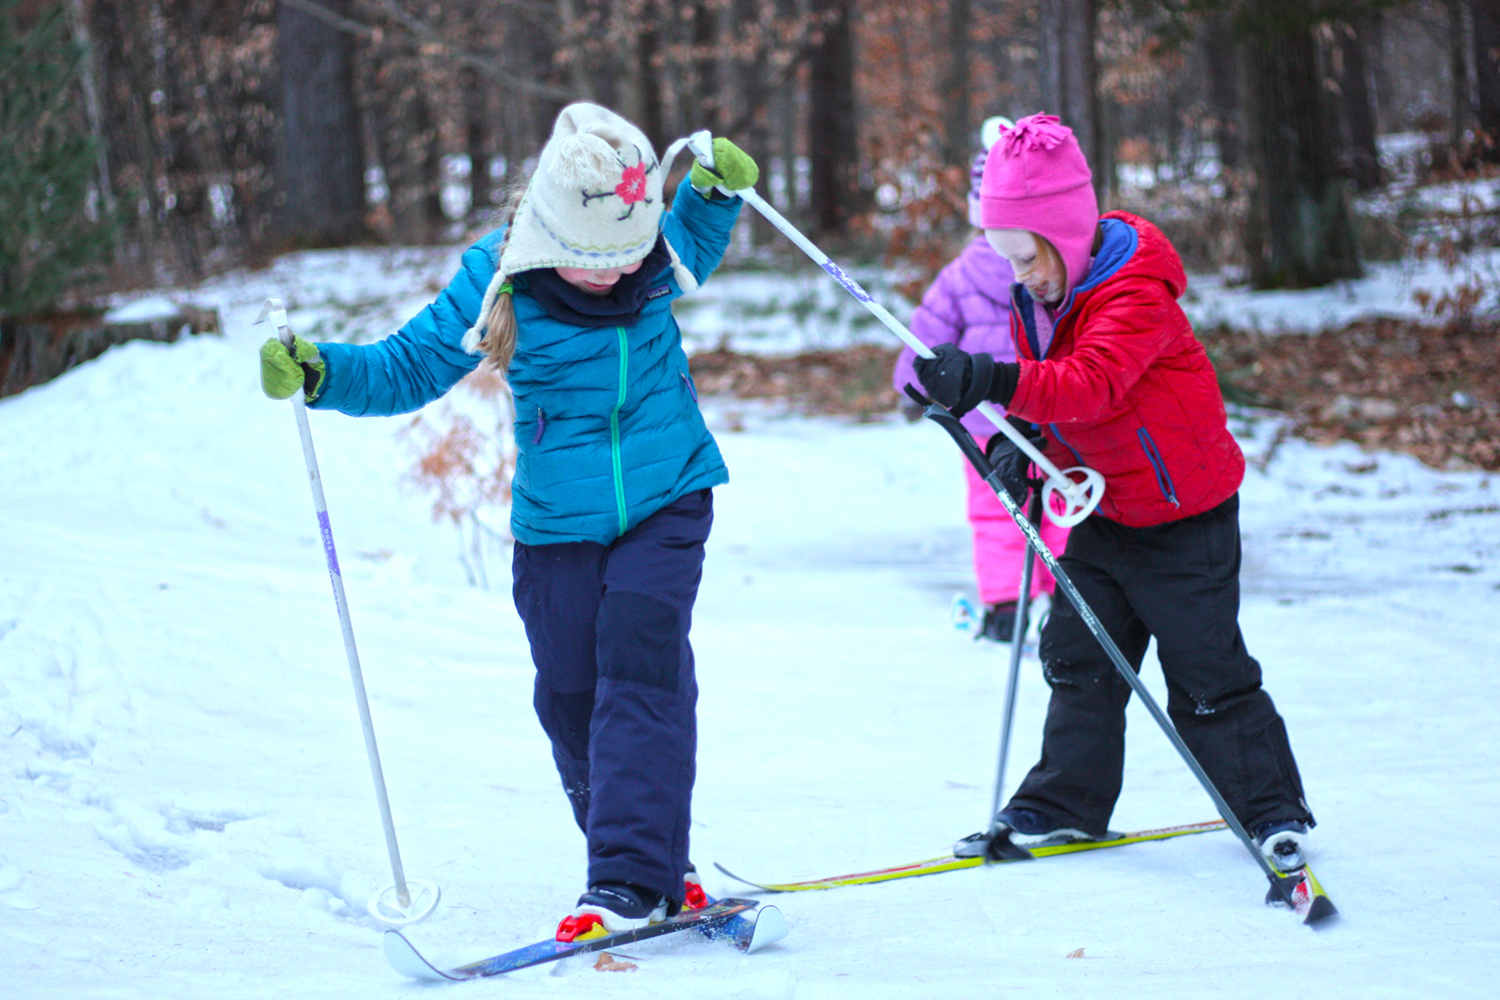 Skier fun on snow during weekly sessions in Greenfield.   Chris Yarsevich